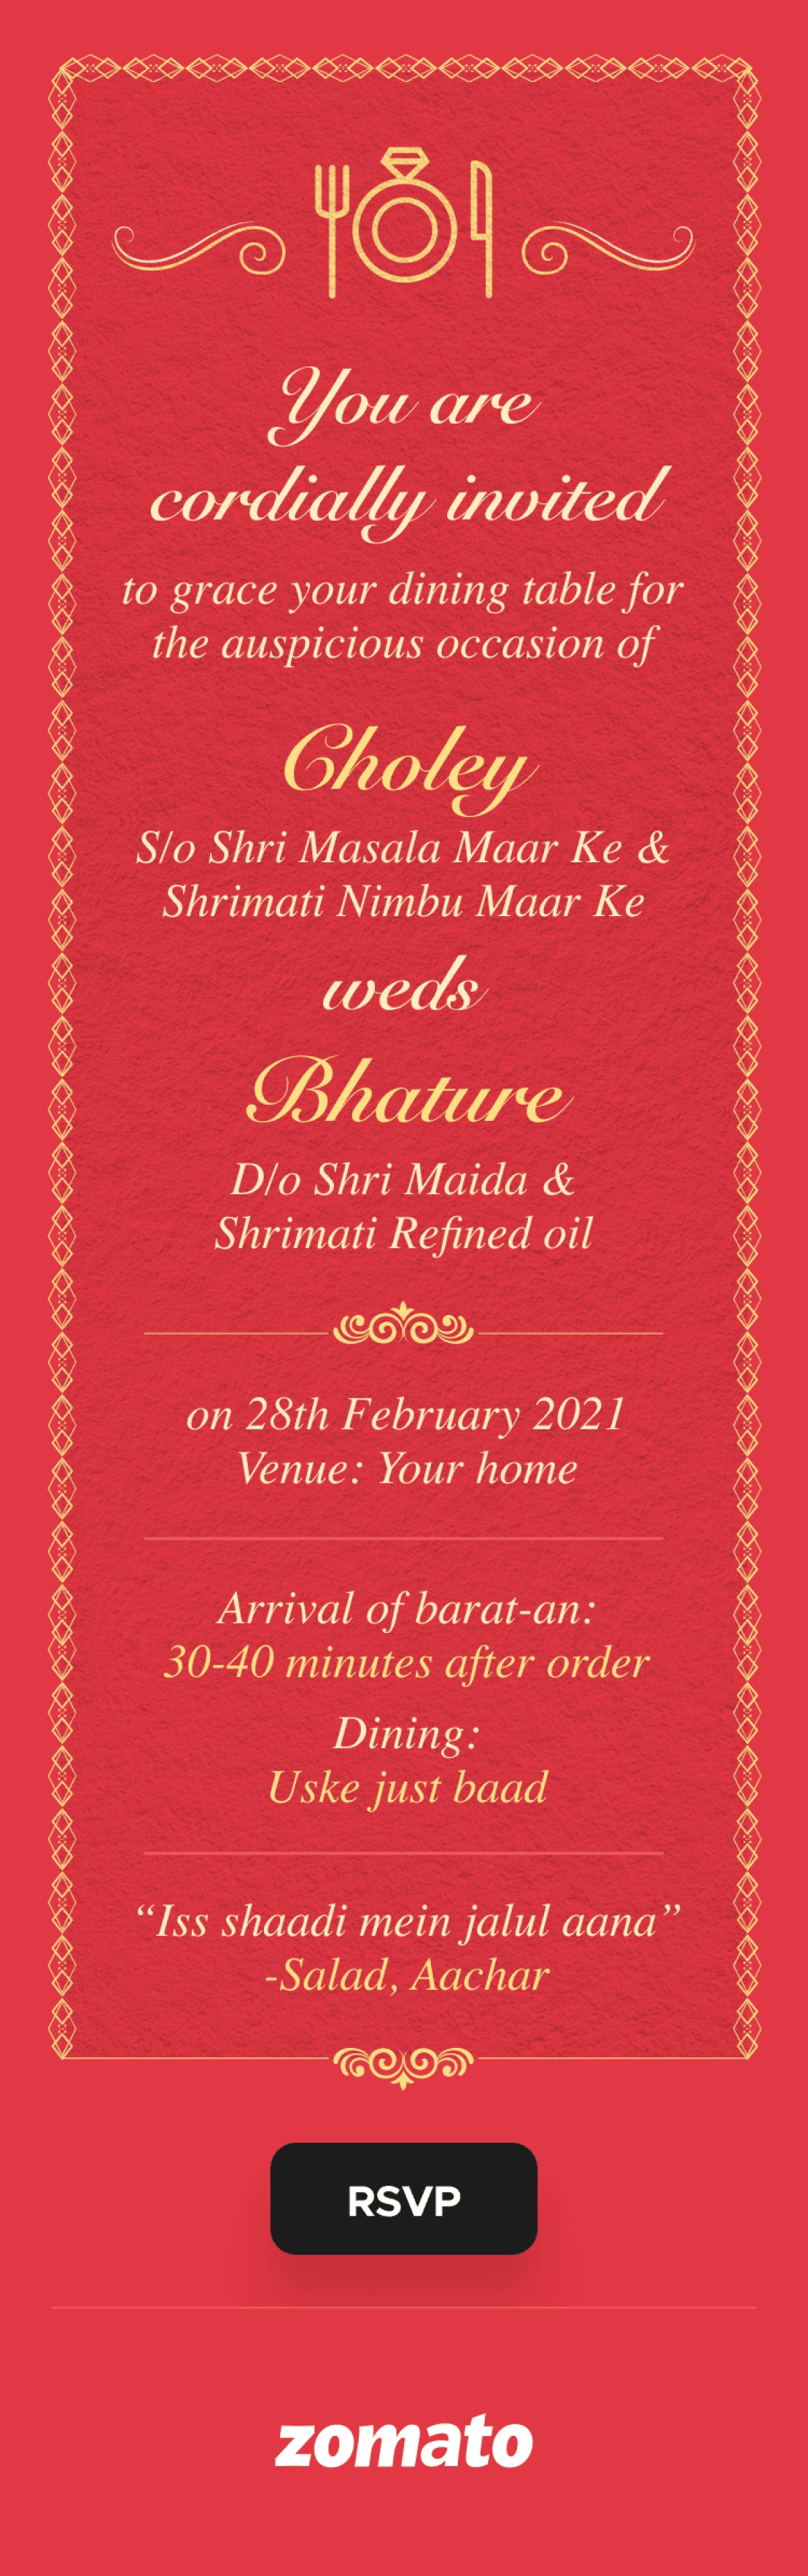 Zomato invites you to Bhature and Chole's wedding...